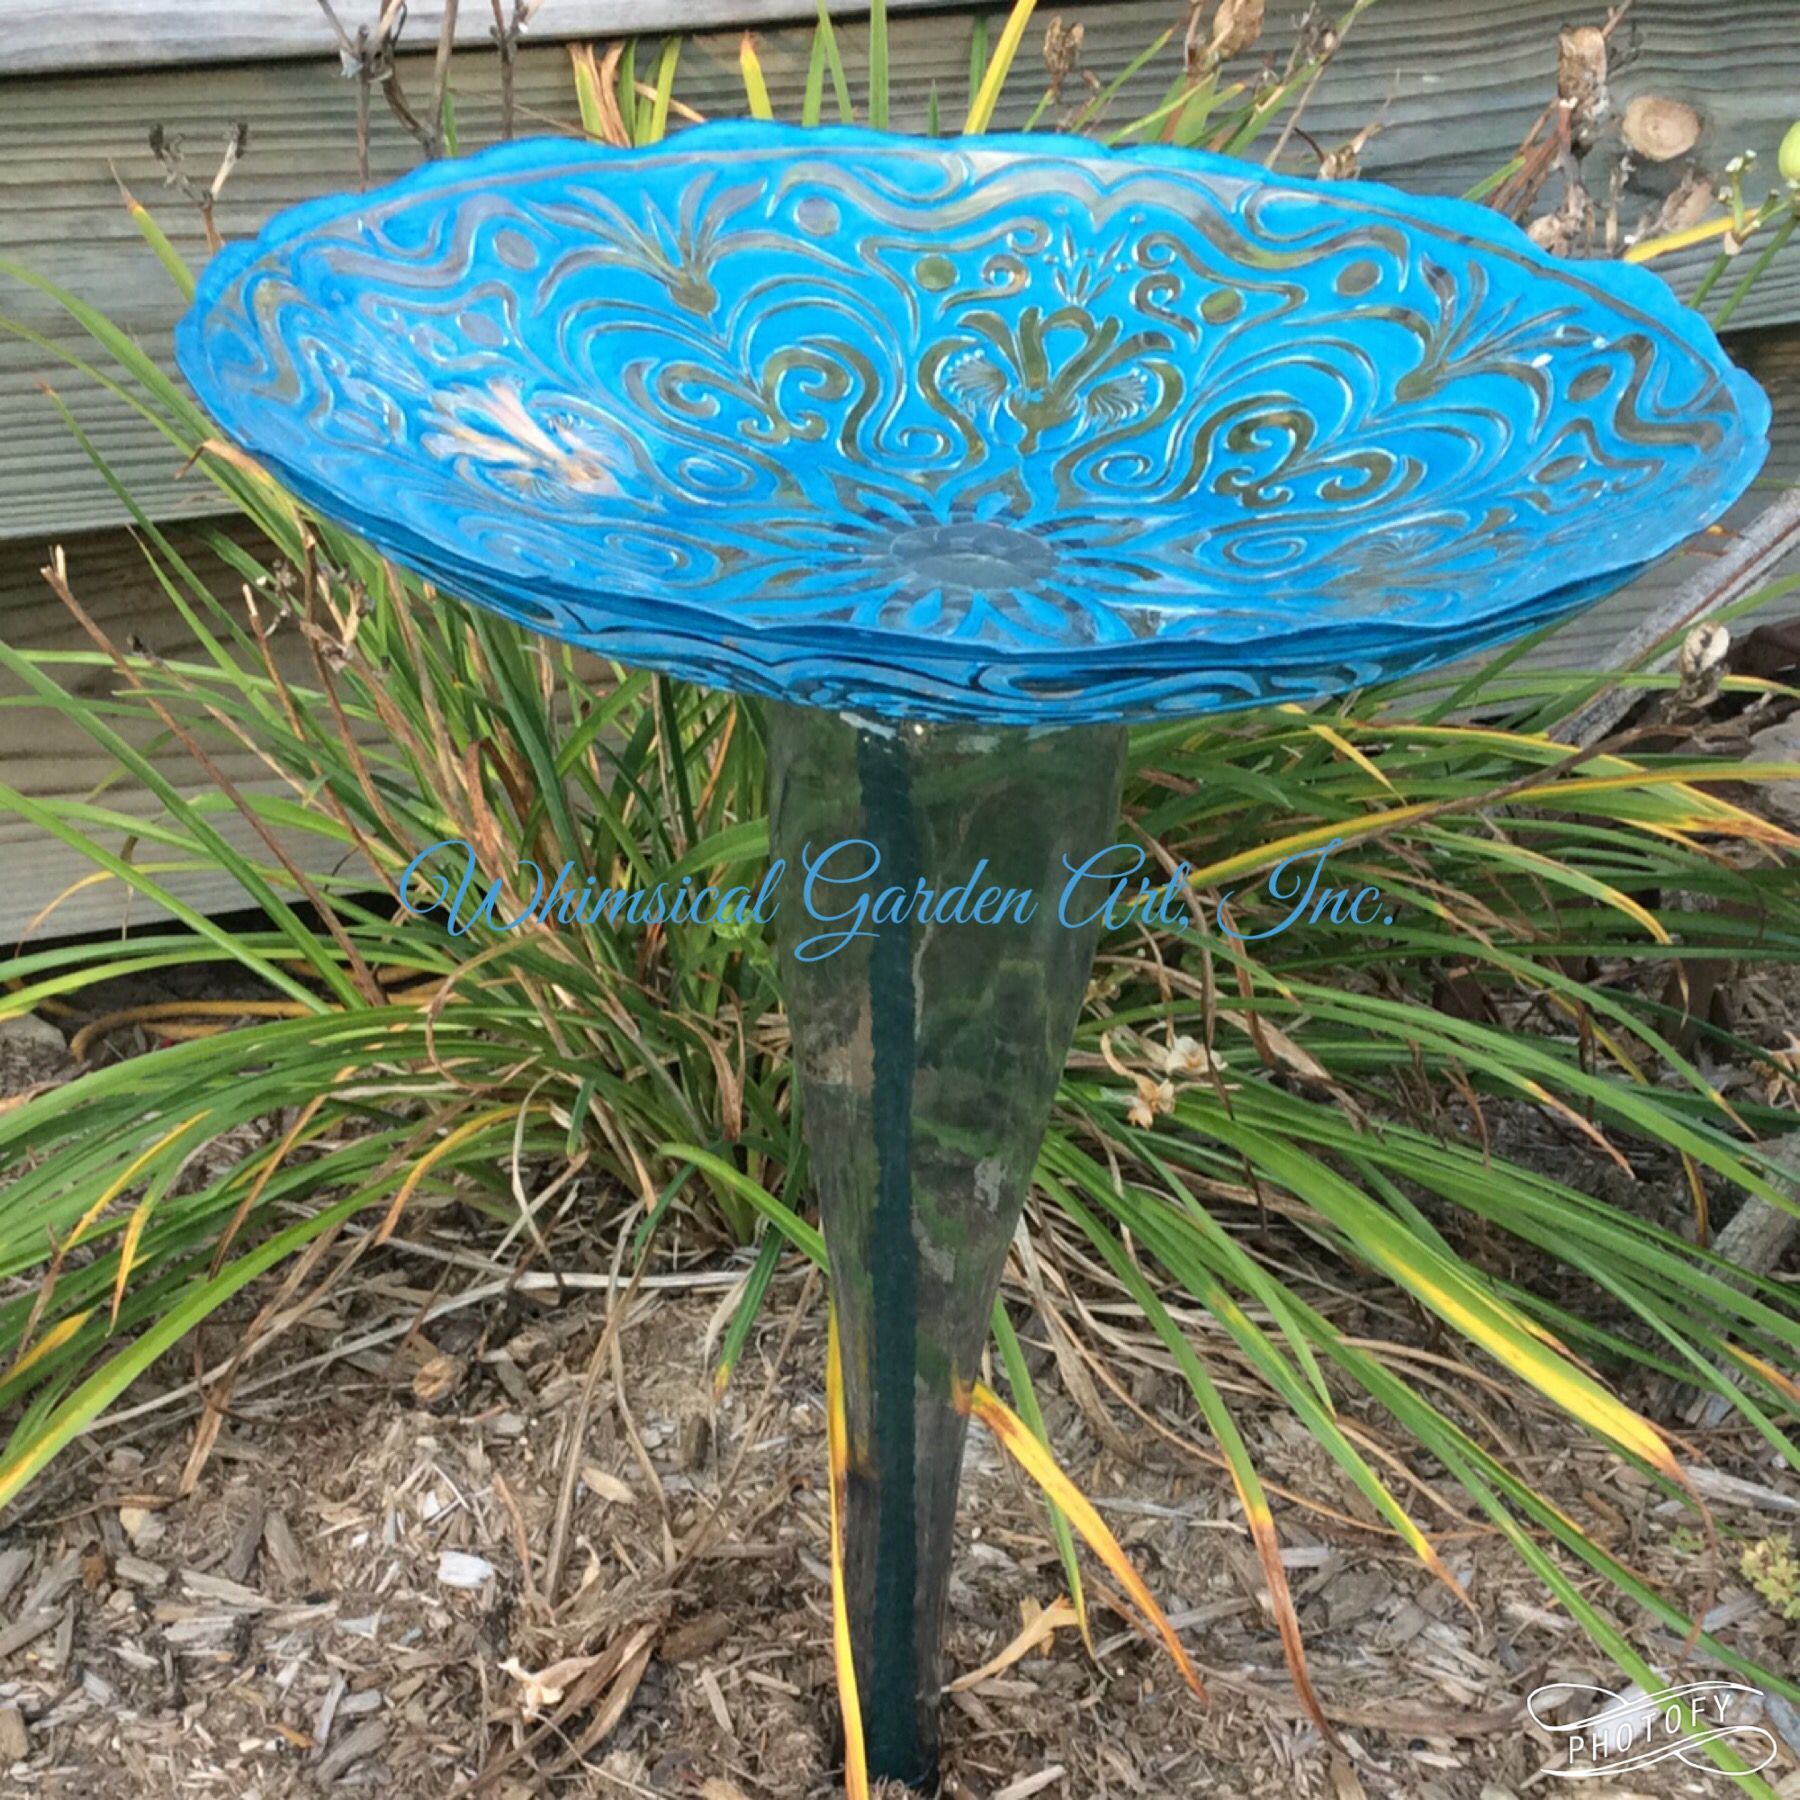 Bird Bath By Whimsical Garden Art, Inc.